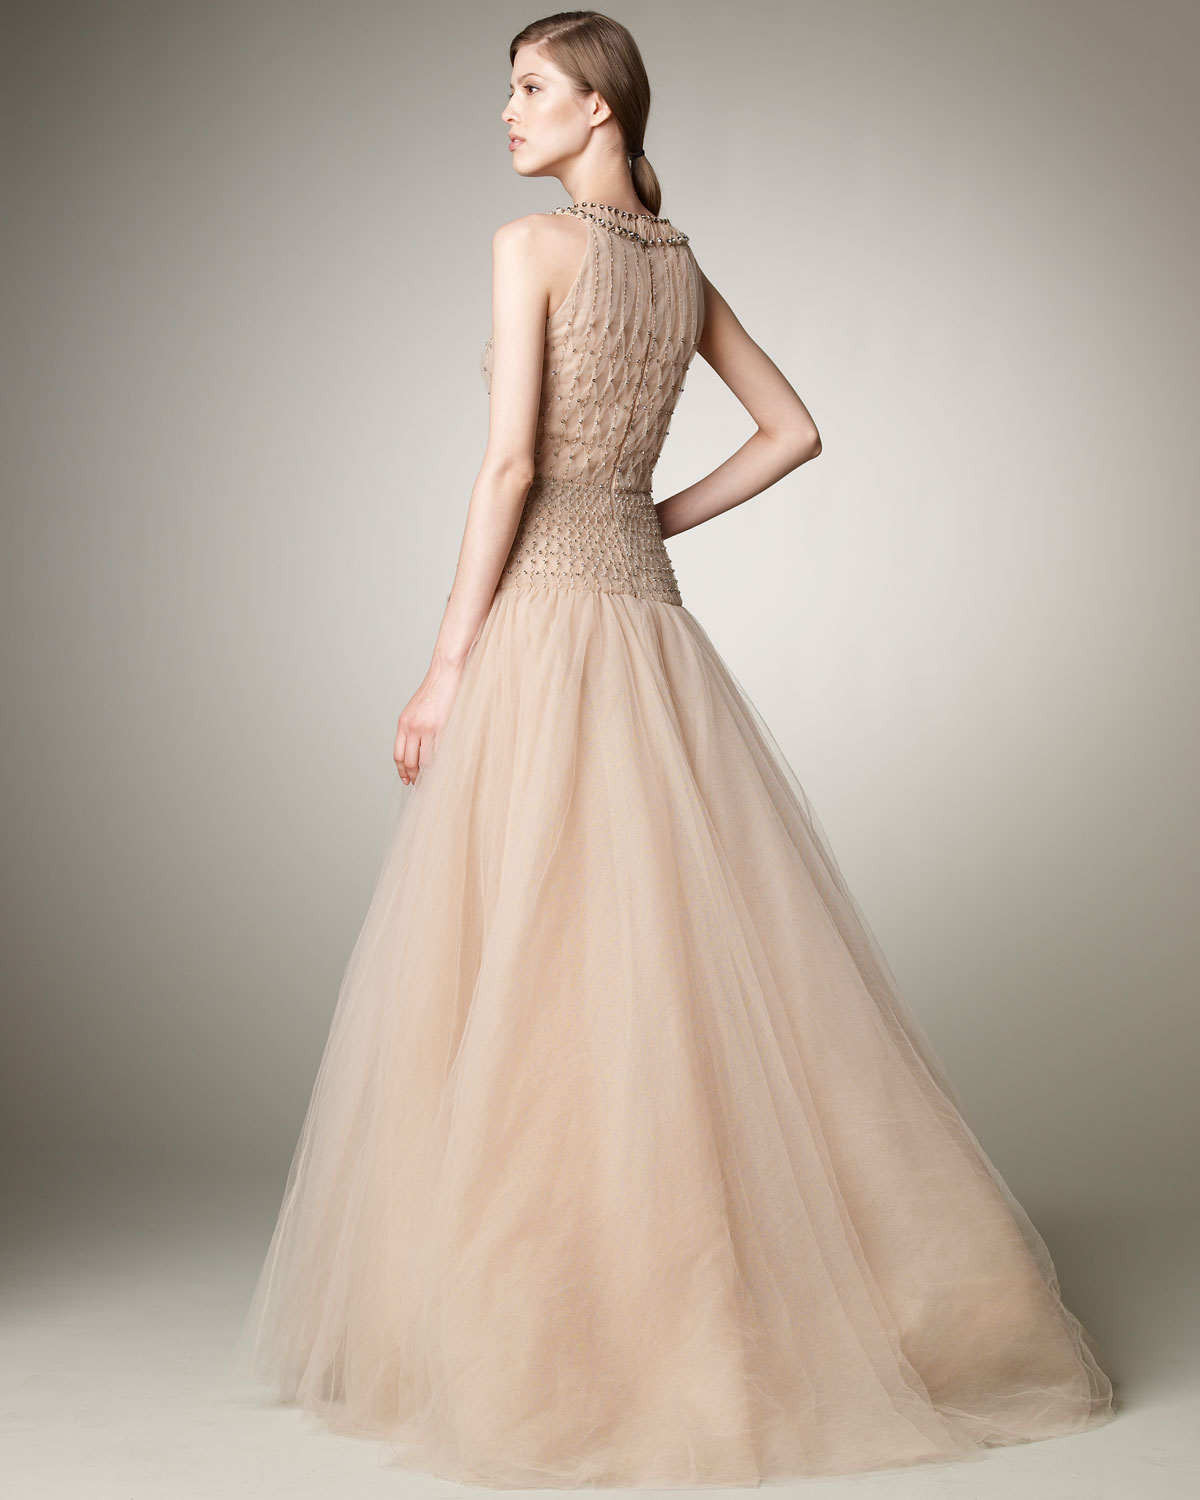 Lyst - Valentino Tulle Illusion Ball Gown in Natural